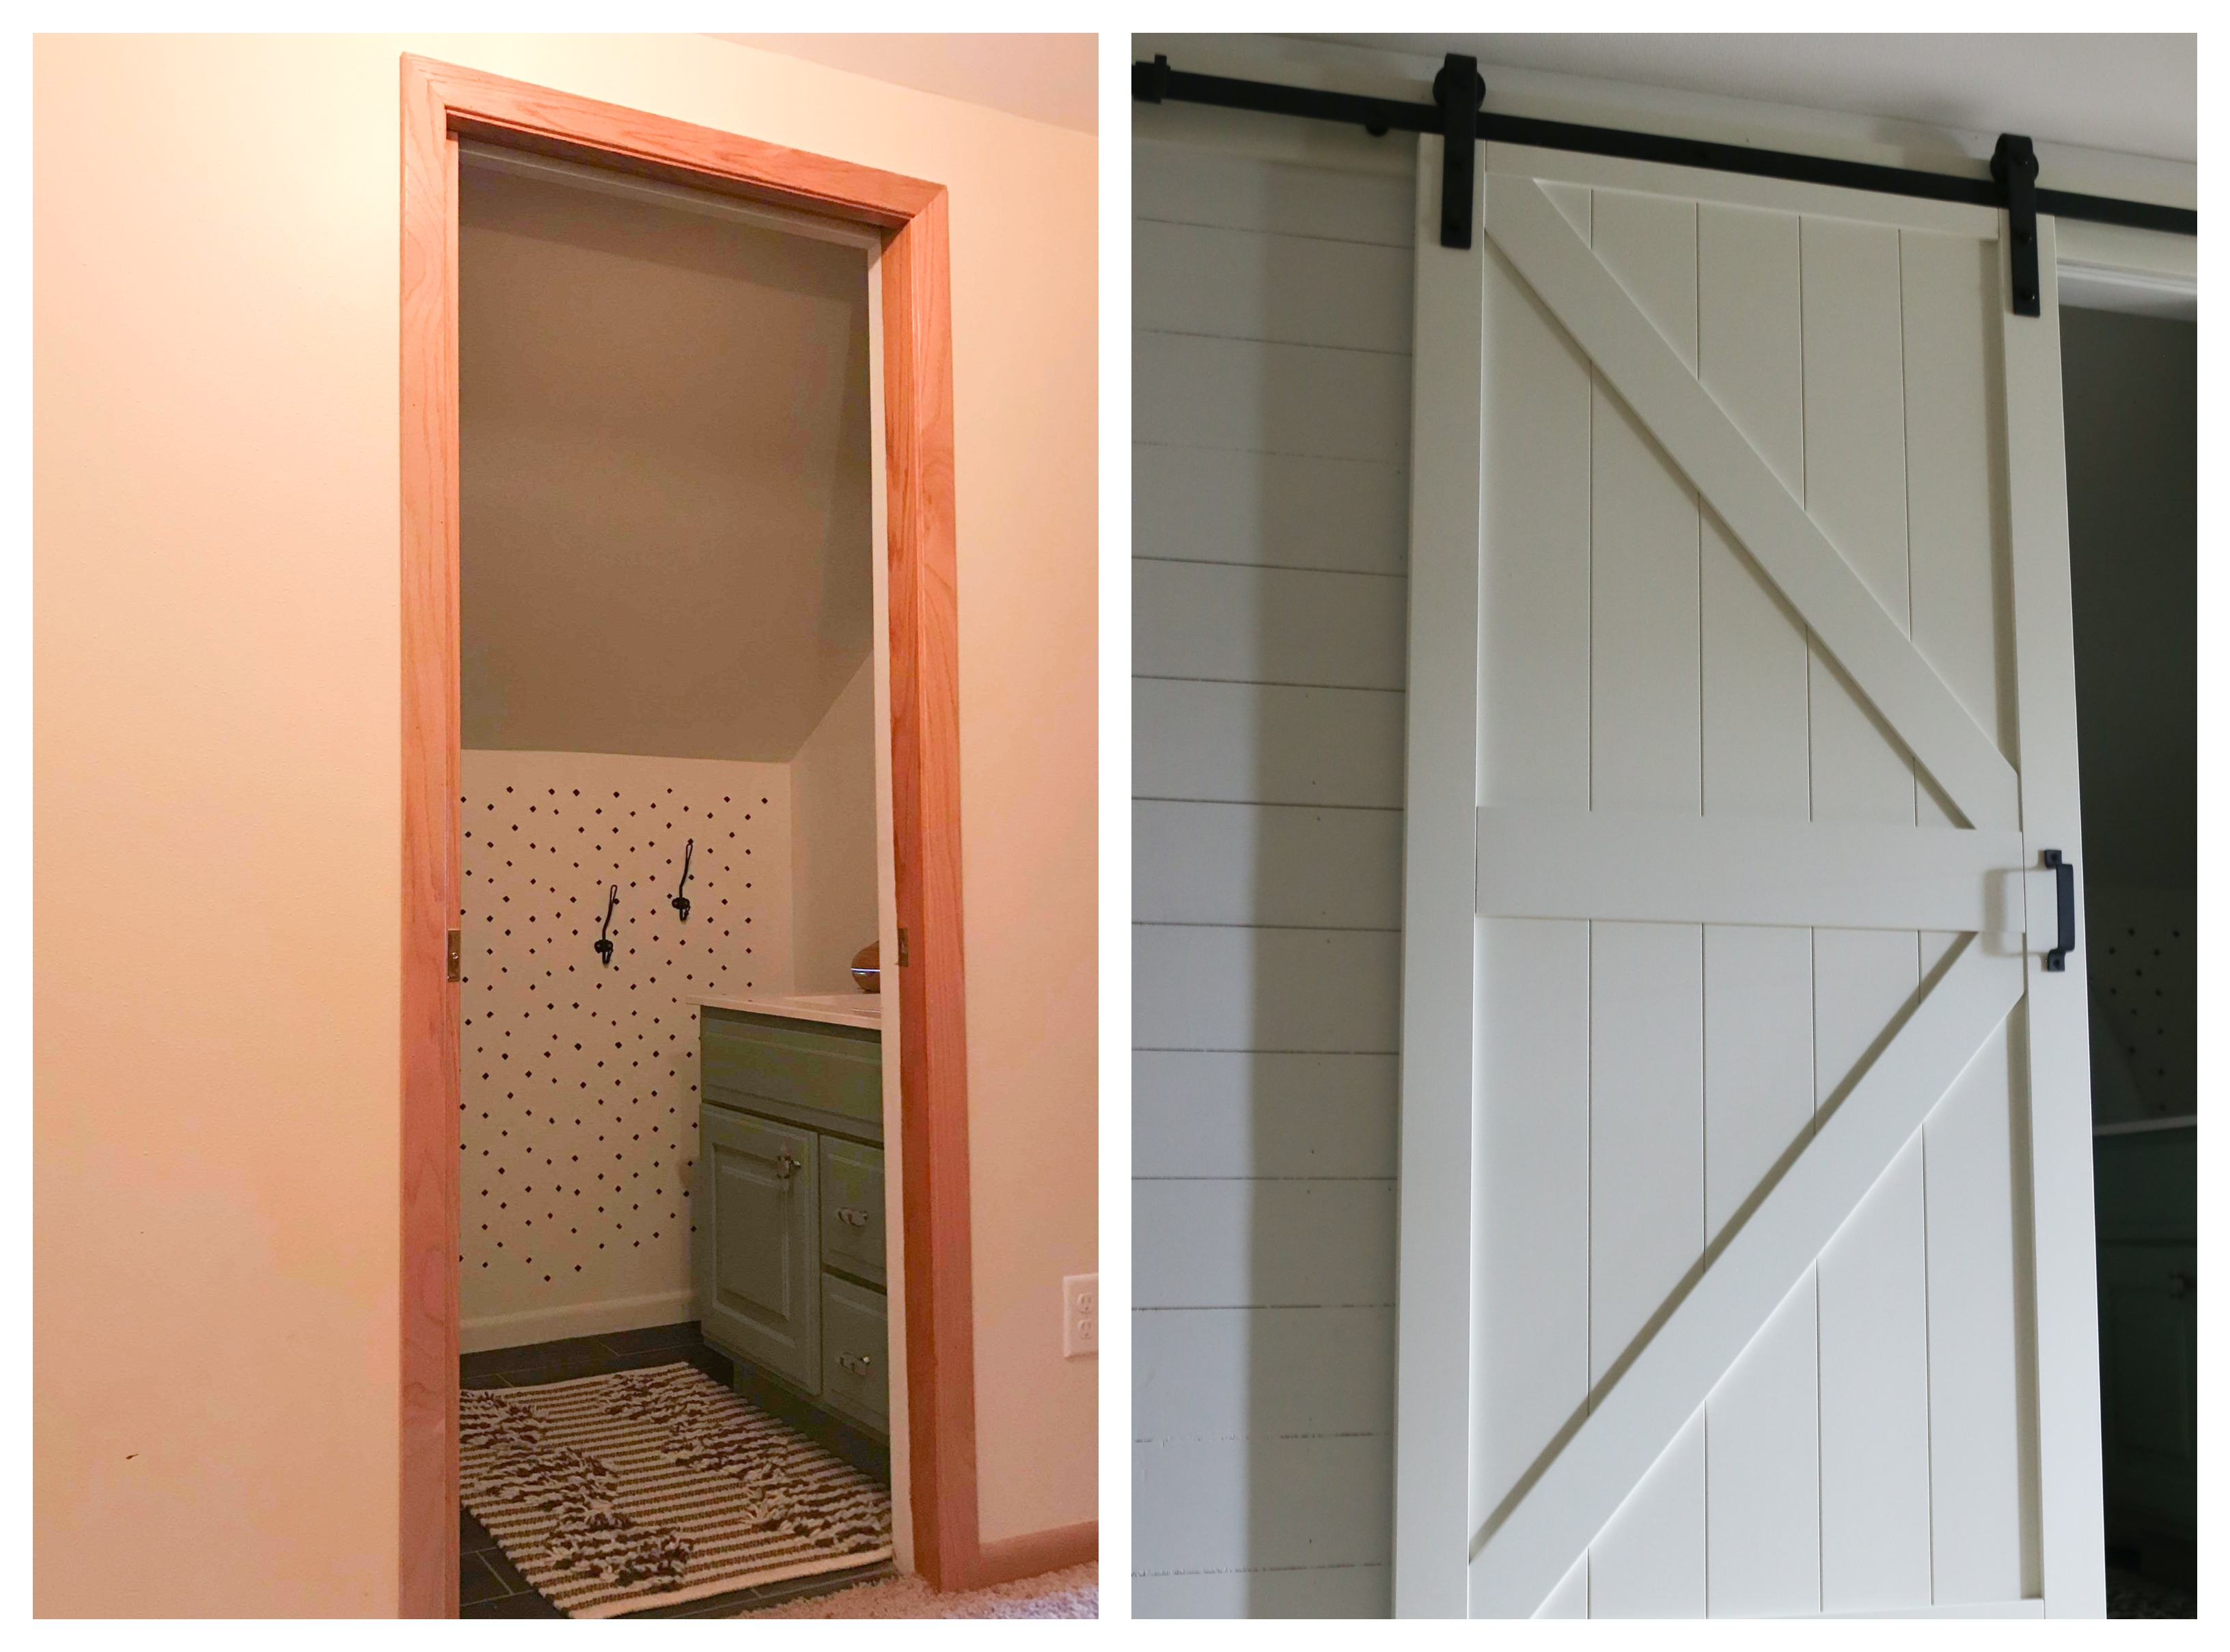 The builder basic hallway is updated with faux shiplap and a sliding barn door.